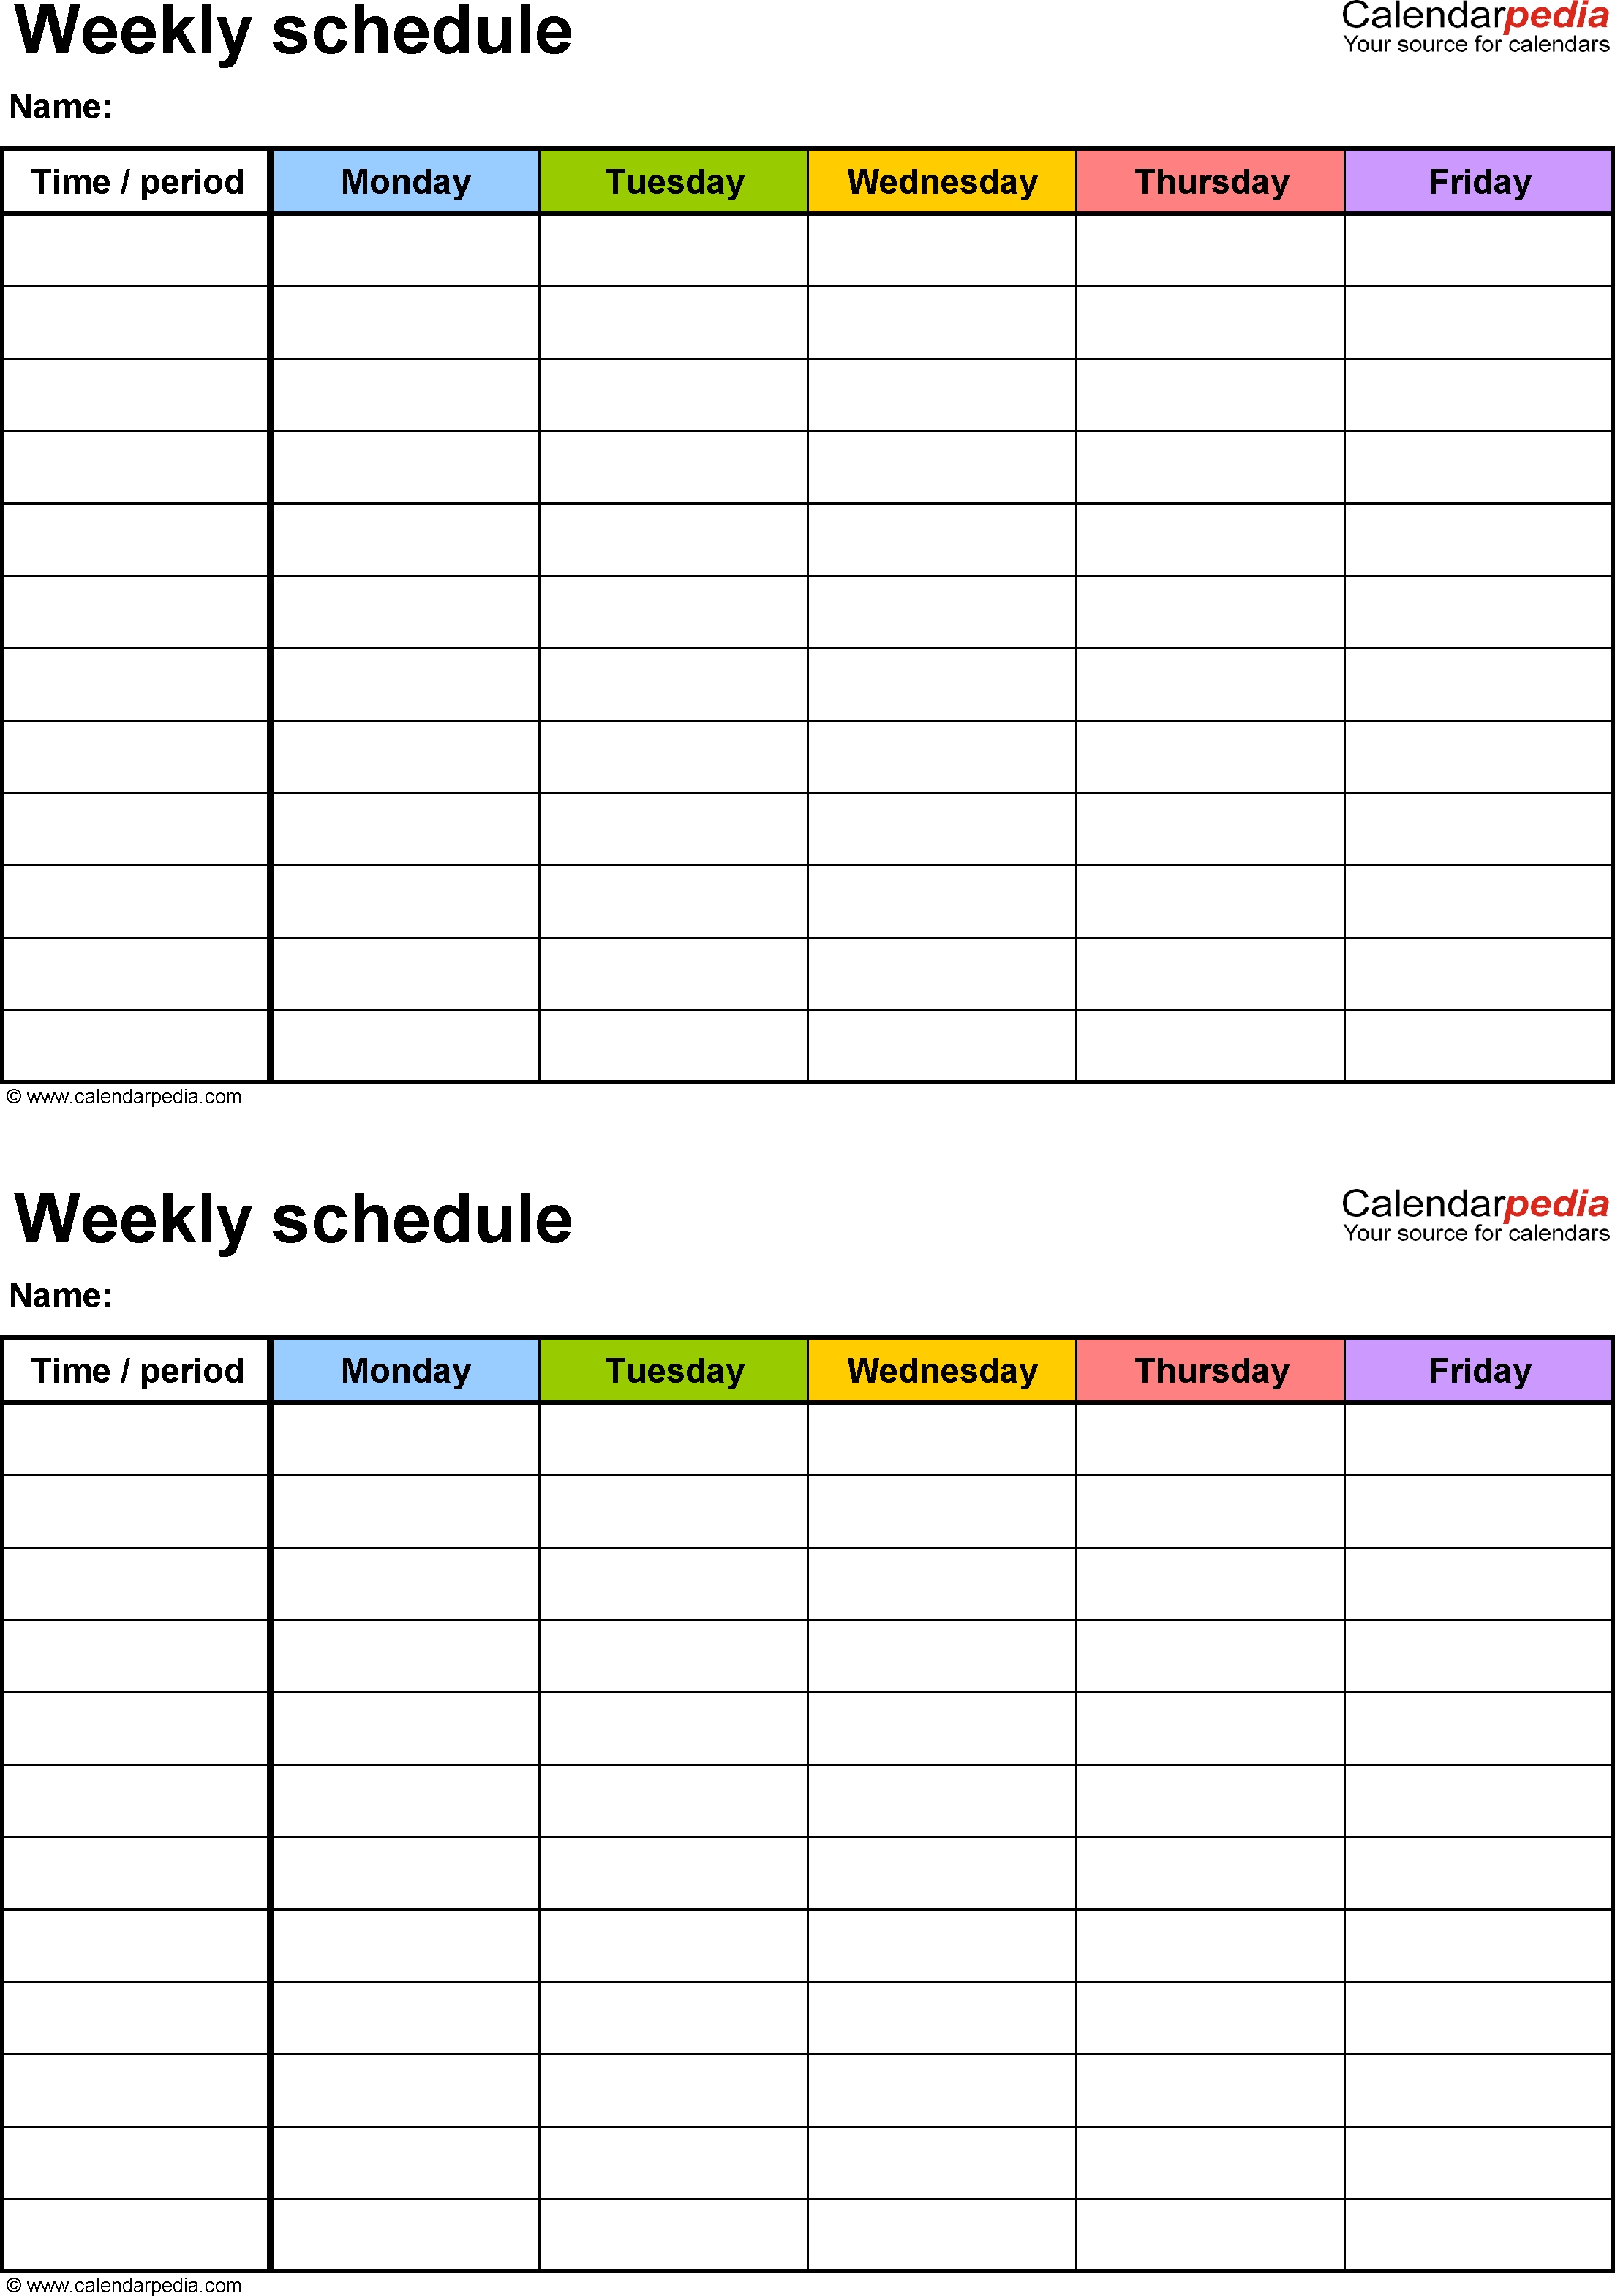 Free Weekly Schedule Templates For Word - 18 Templates Microsoft Word Weekly Calendar Template